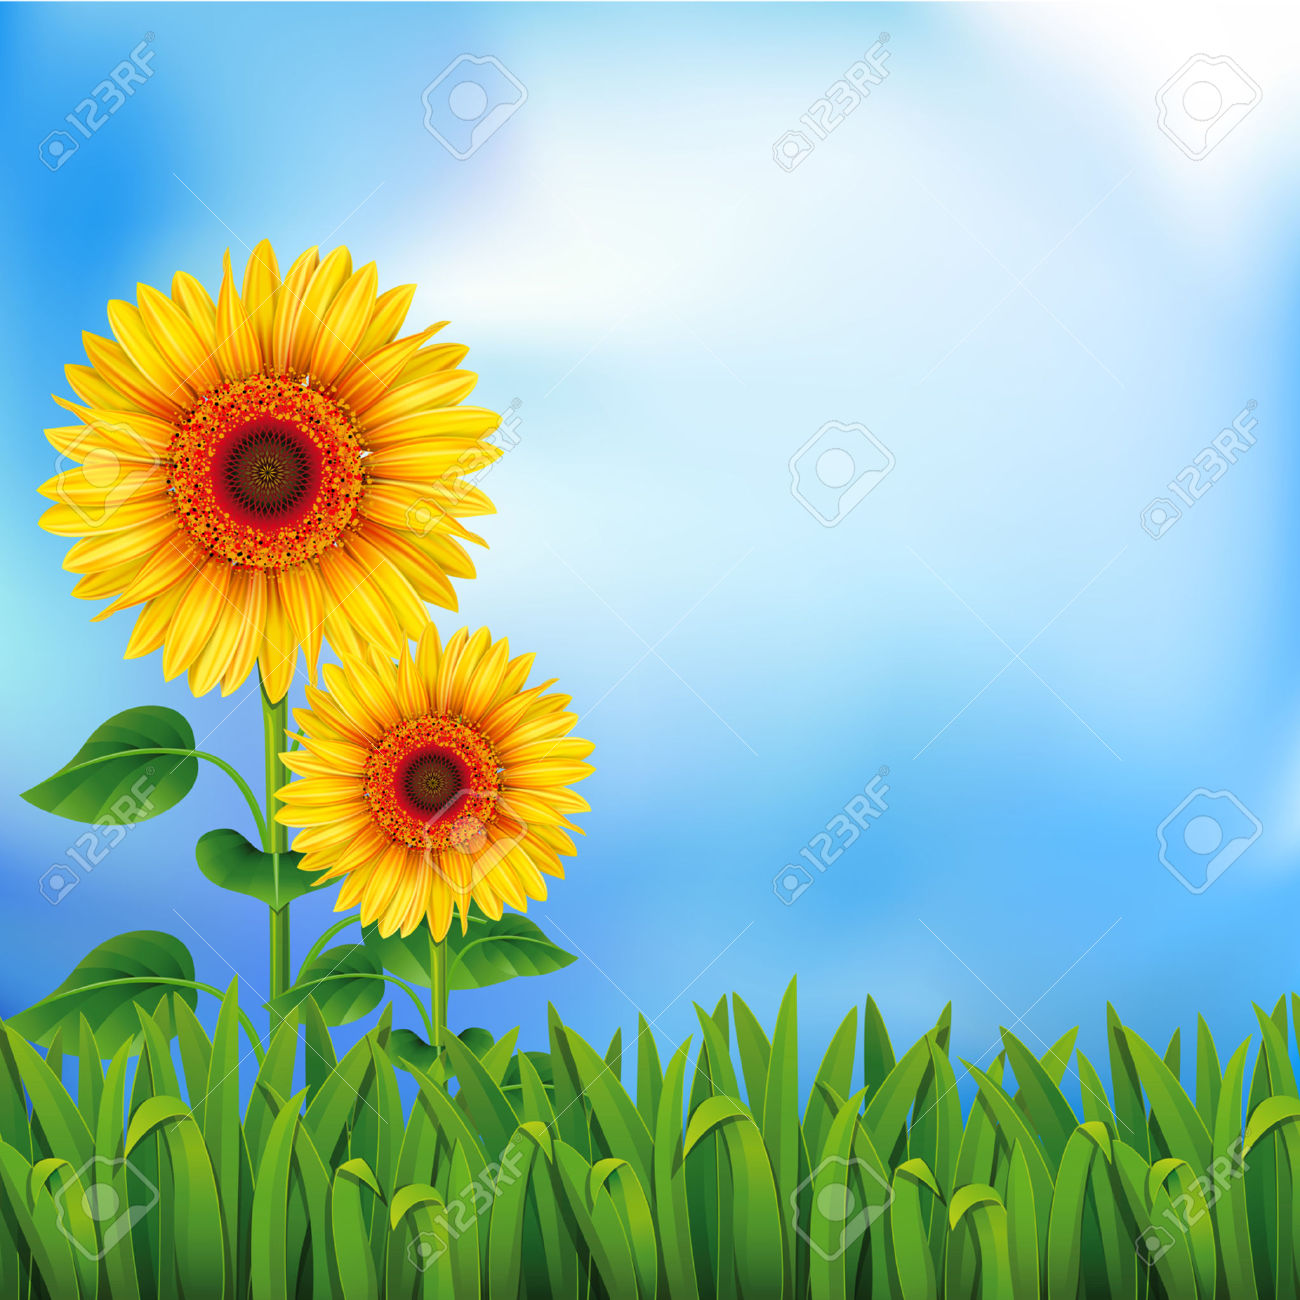 Sunflower clipart background - ClipartFest